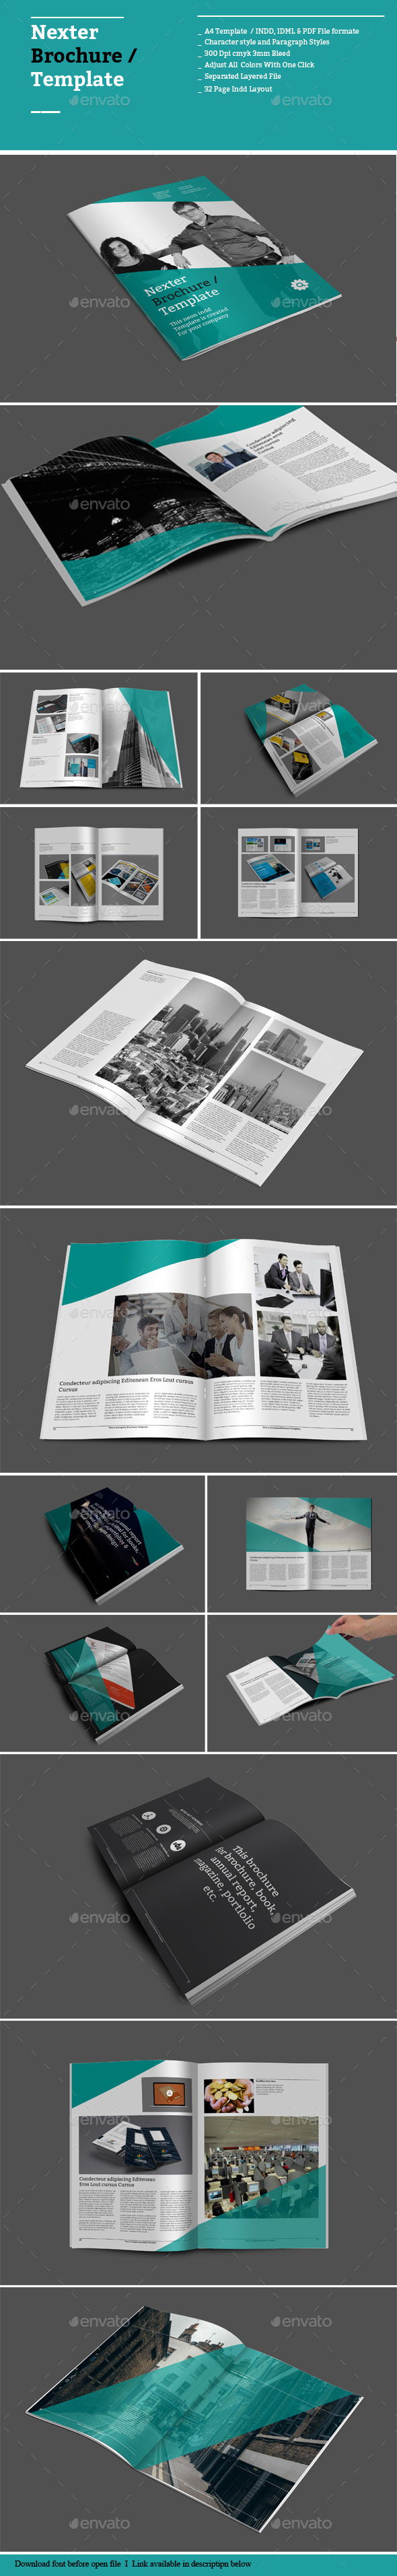 GraphicRiver Nexter Brochure Templates 8891729